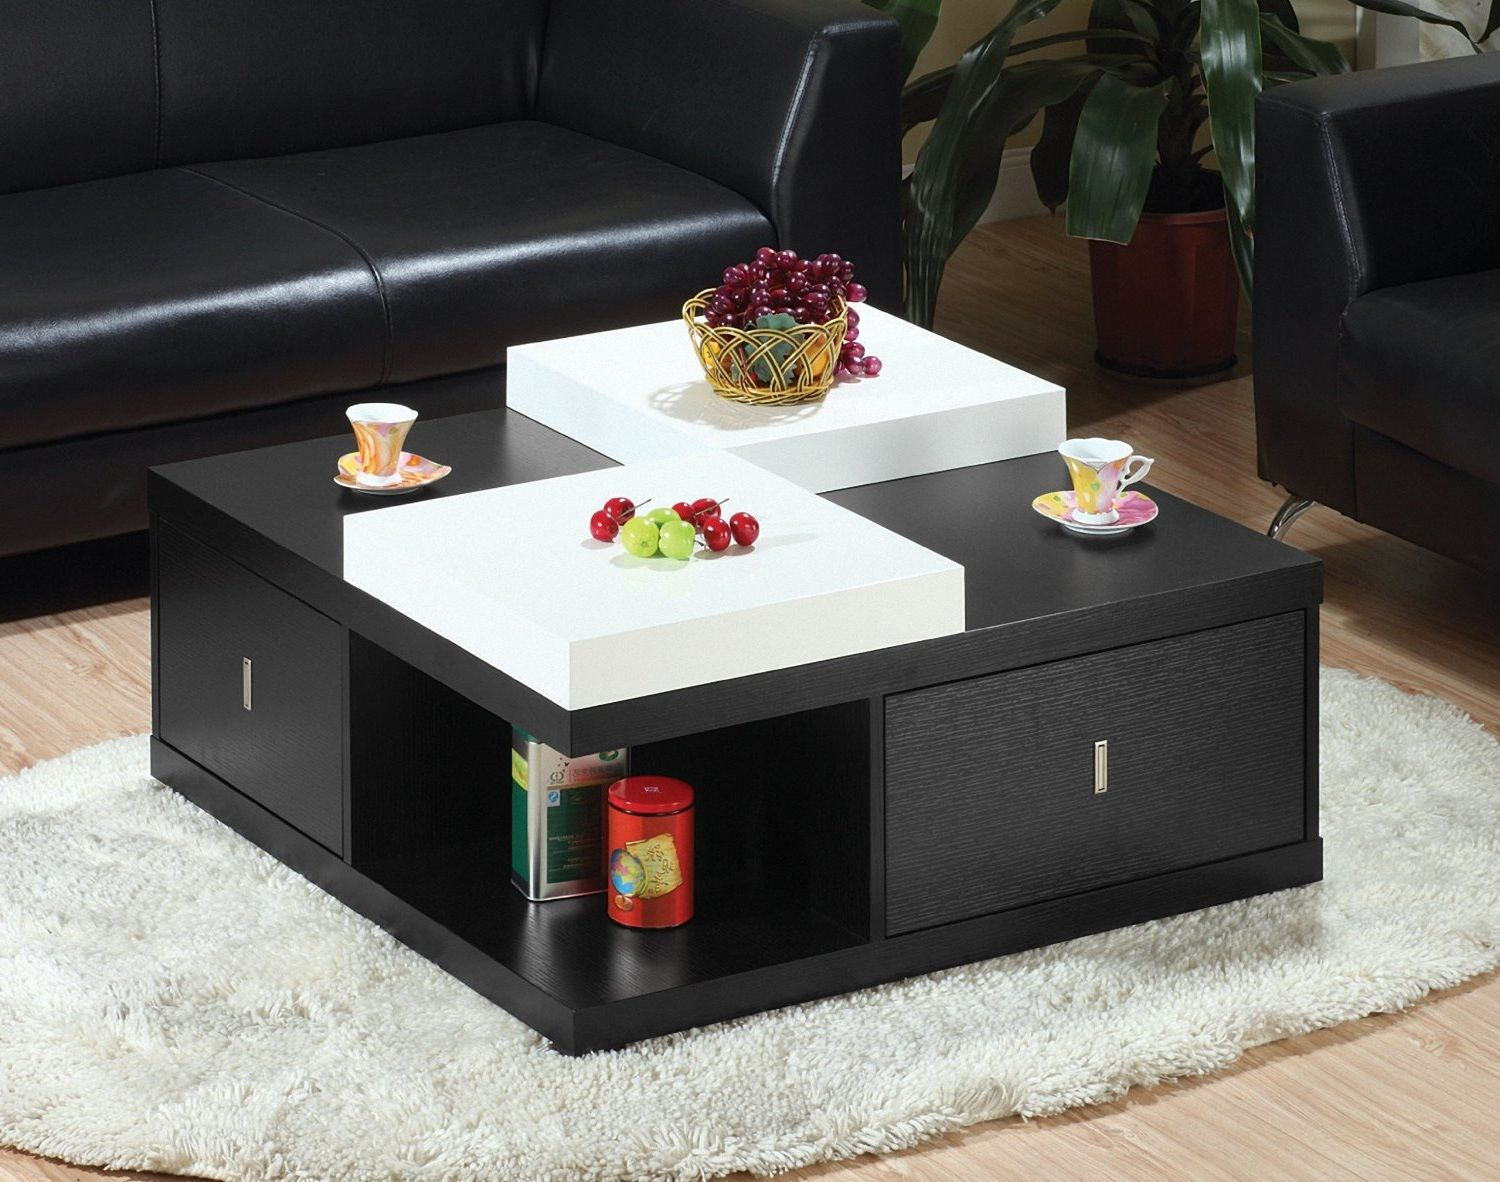 Captivating Large Square Coffee Table